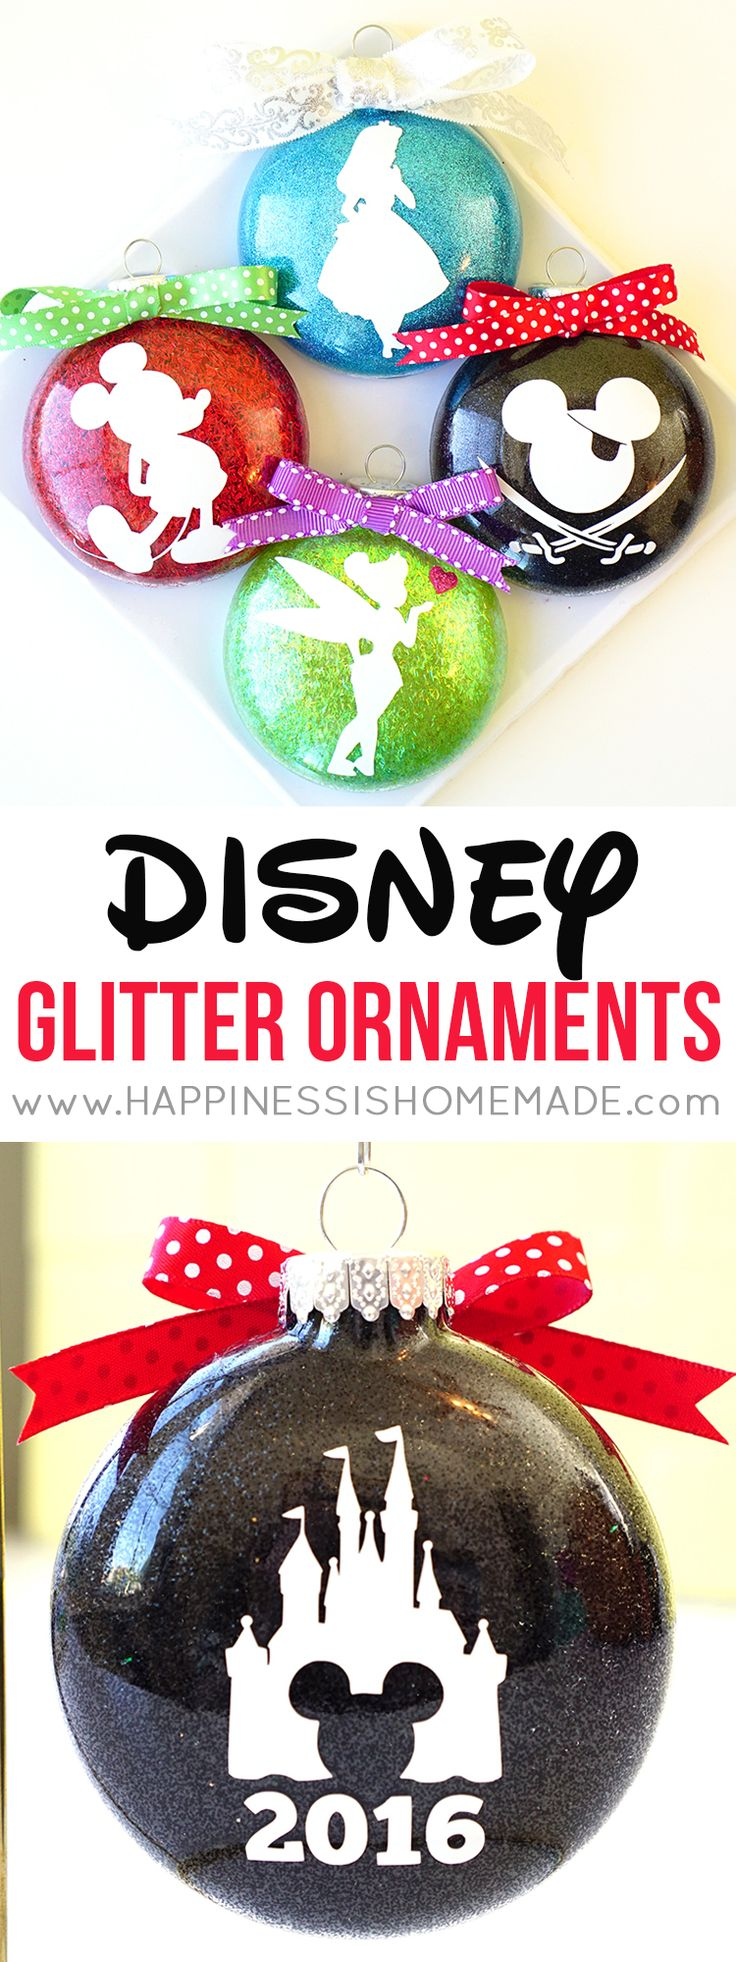 These Disney Glitter Christmas Ornaments are a super quick and easy DIY holiday decoration and gift idea! Customize with your favorite characters!